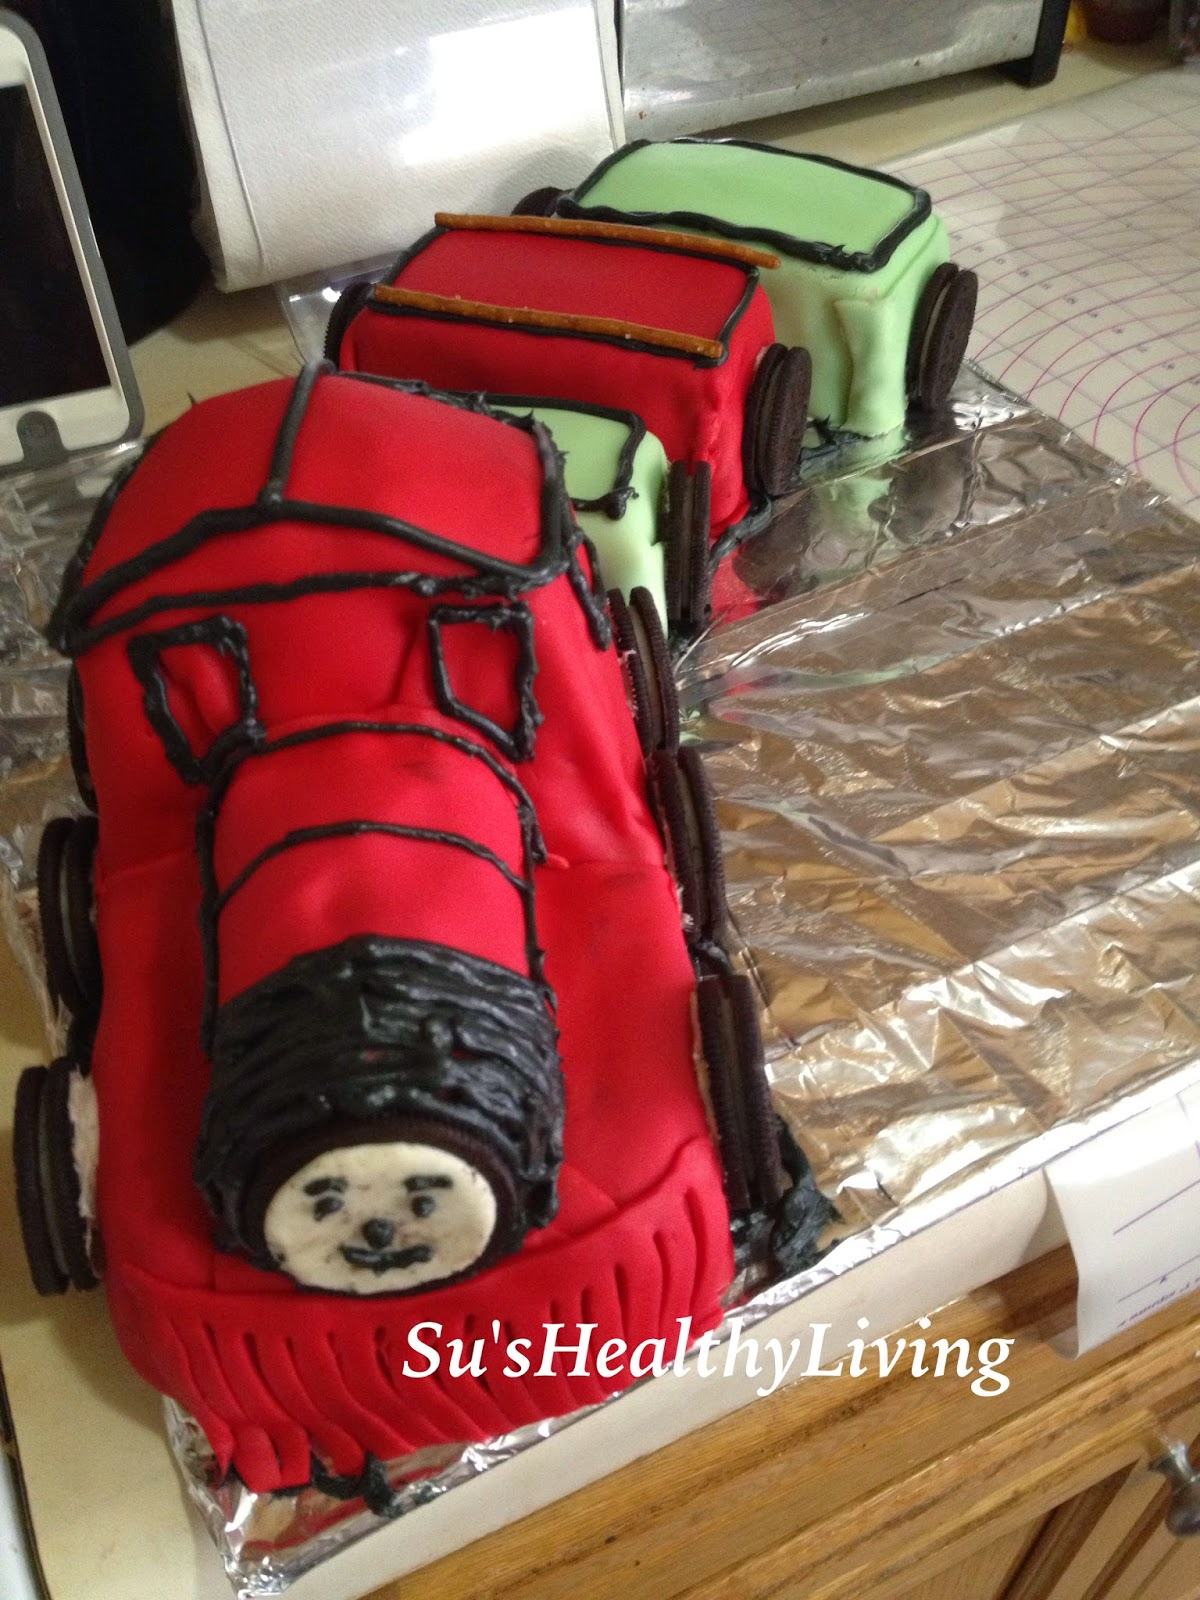 Sus Healthy Living Train Cake Shawn the train